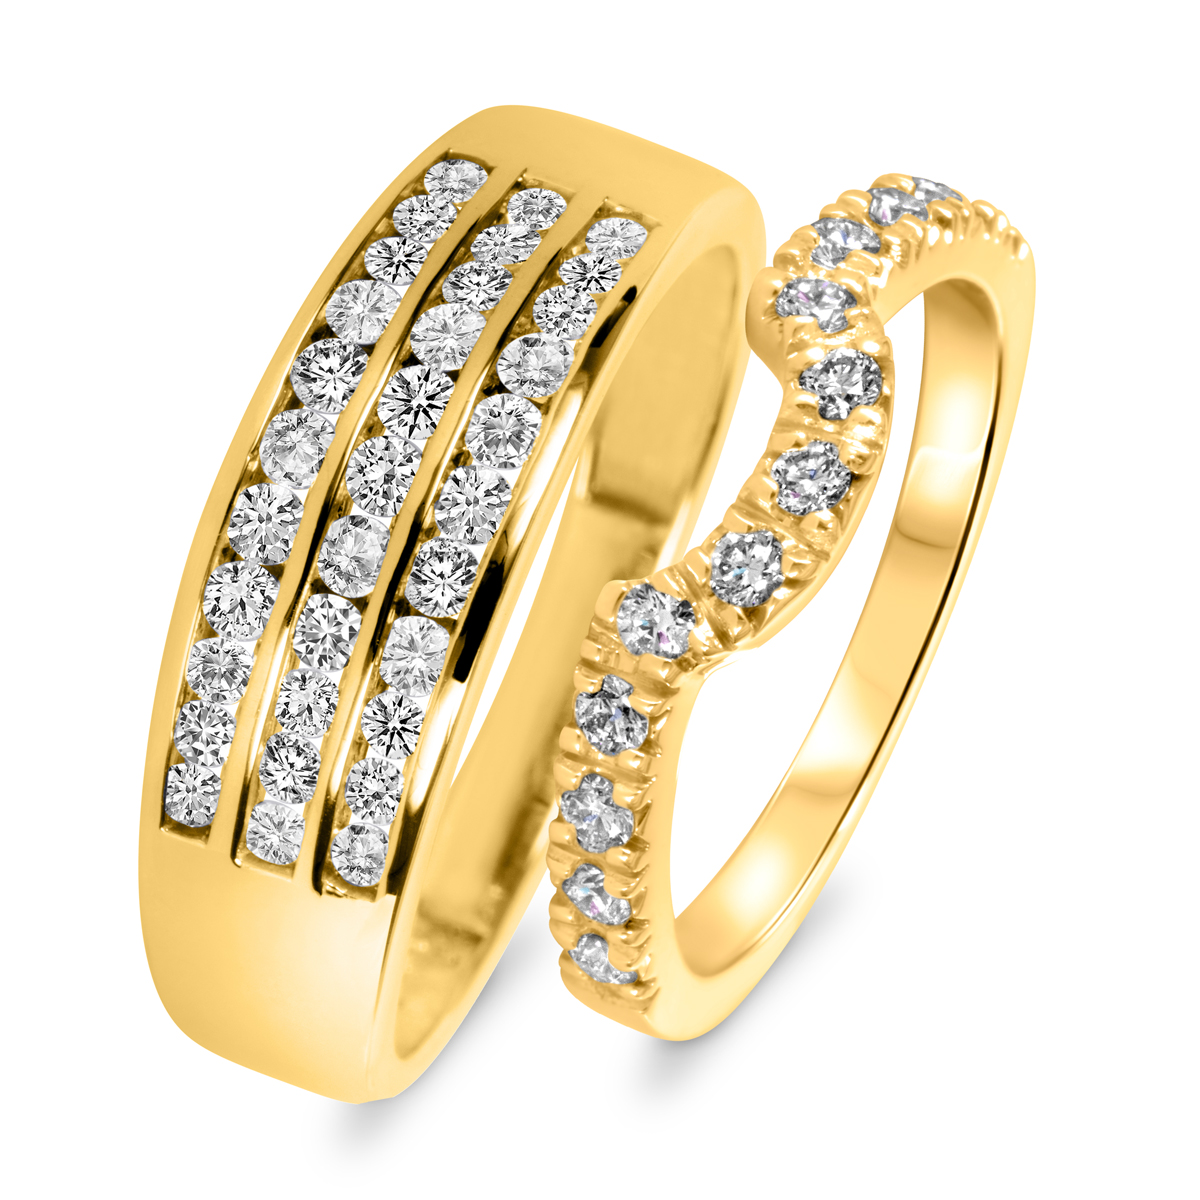 1 Carat T.W. Round Cut Diamond His And Hers Wedding Band Set 10K Yellow Gold-